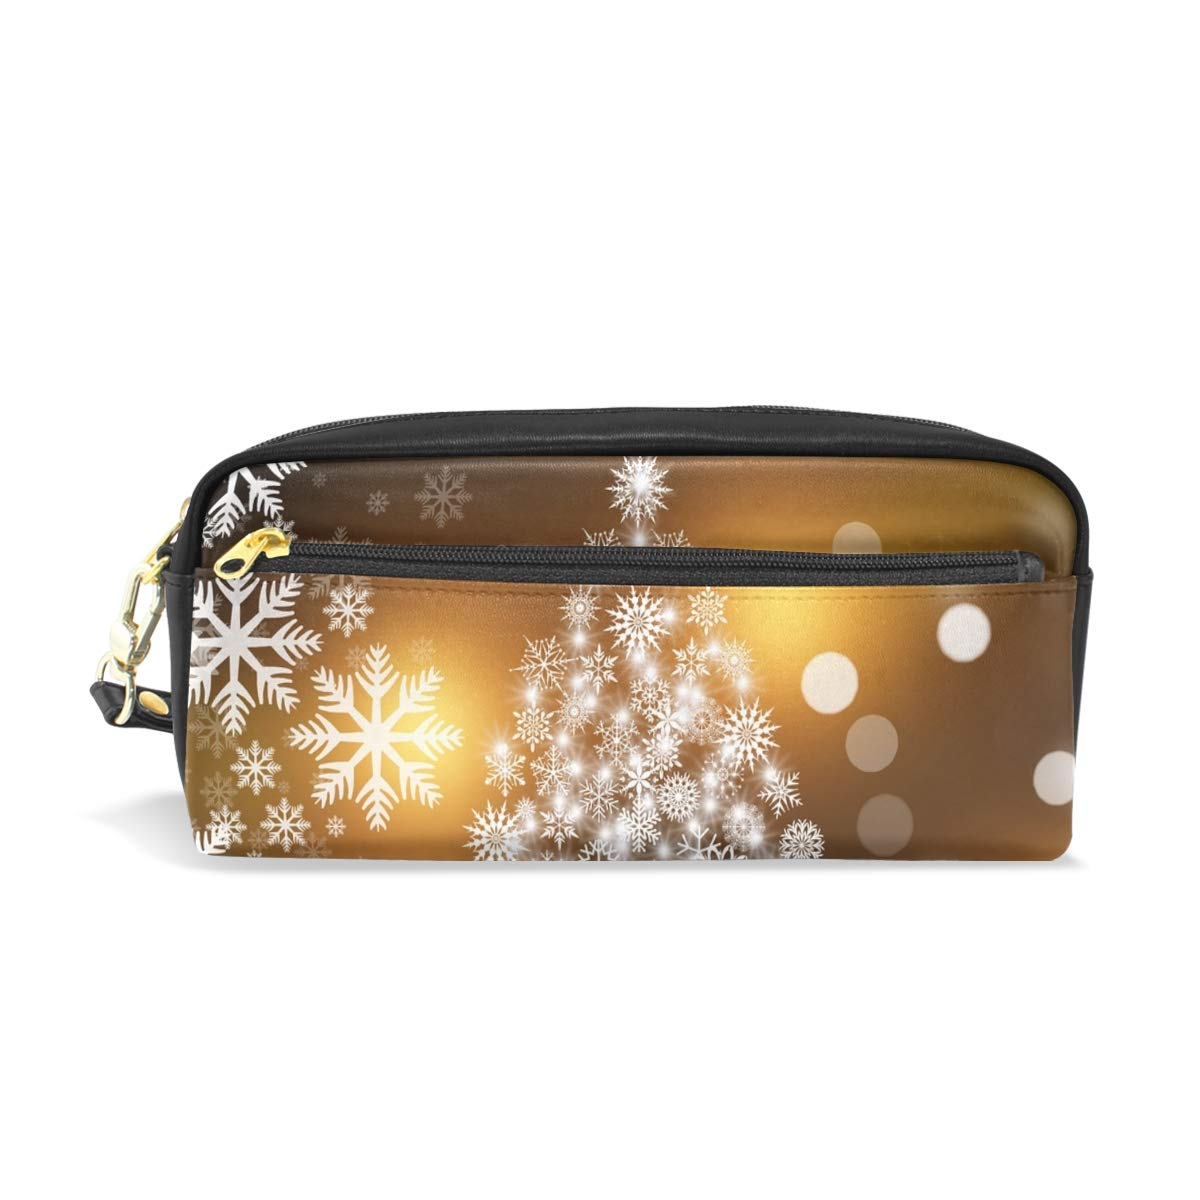 XINGCHENSS Pencil Case Stylish Print Christmas Card Christmas Atmosphere Advent 574742 Art Pattern Large Capacity Pen Bag Makeup Pouch Durable Students Stationery Two Pockets with Double Zipper PENCILCASE-20180911-495